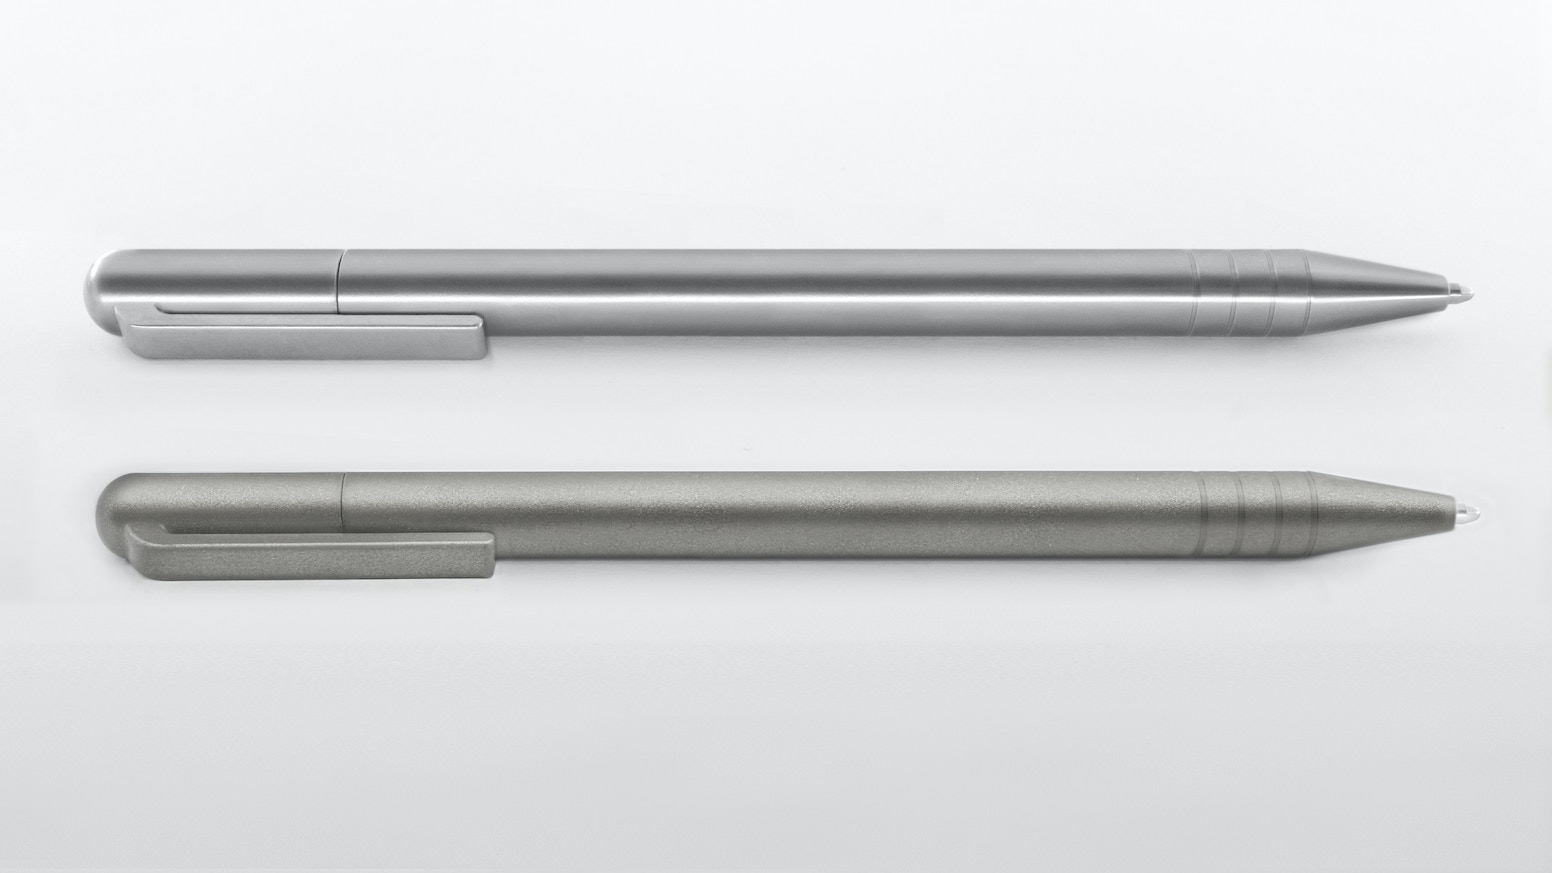 A Titanium Twist & Write Pen. Uses Space Pen & Other Refills. FREE OPTIONS:  Colors & Grooves.